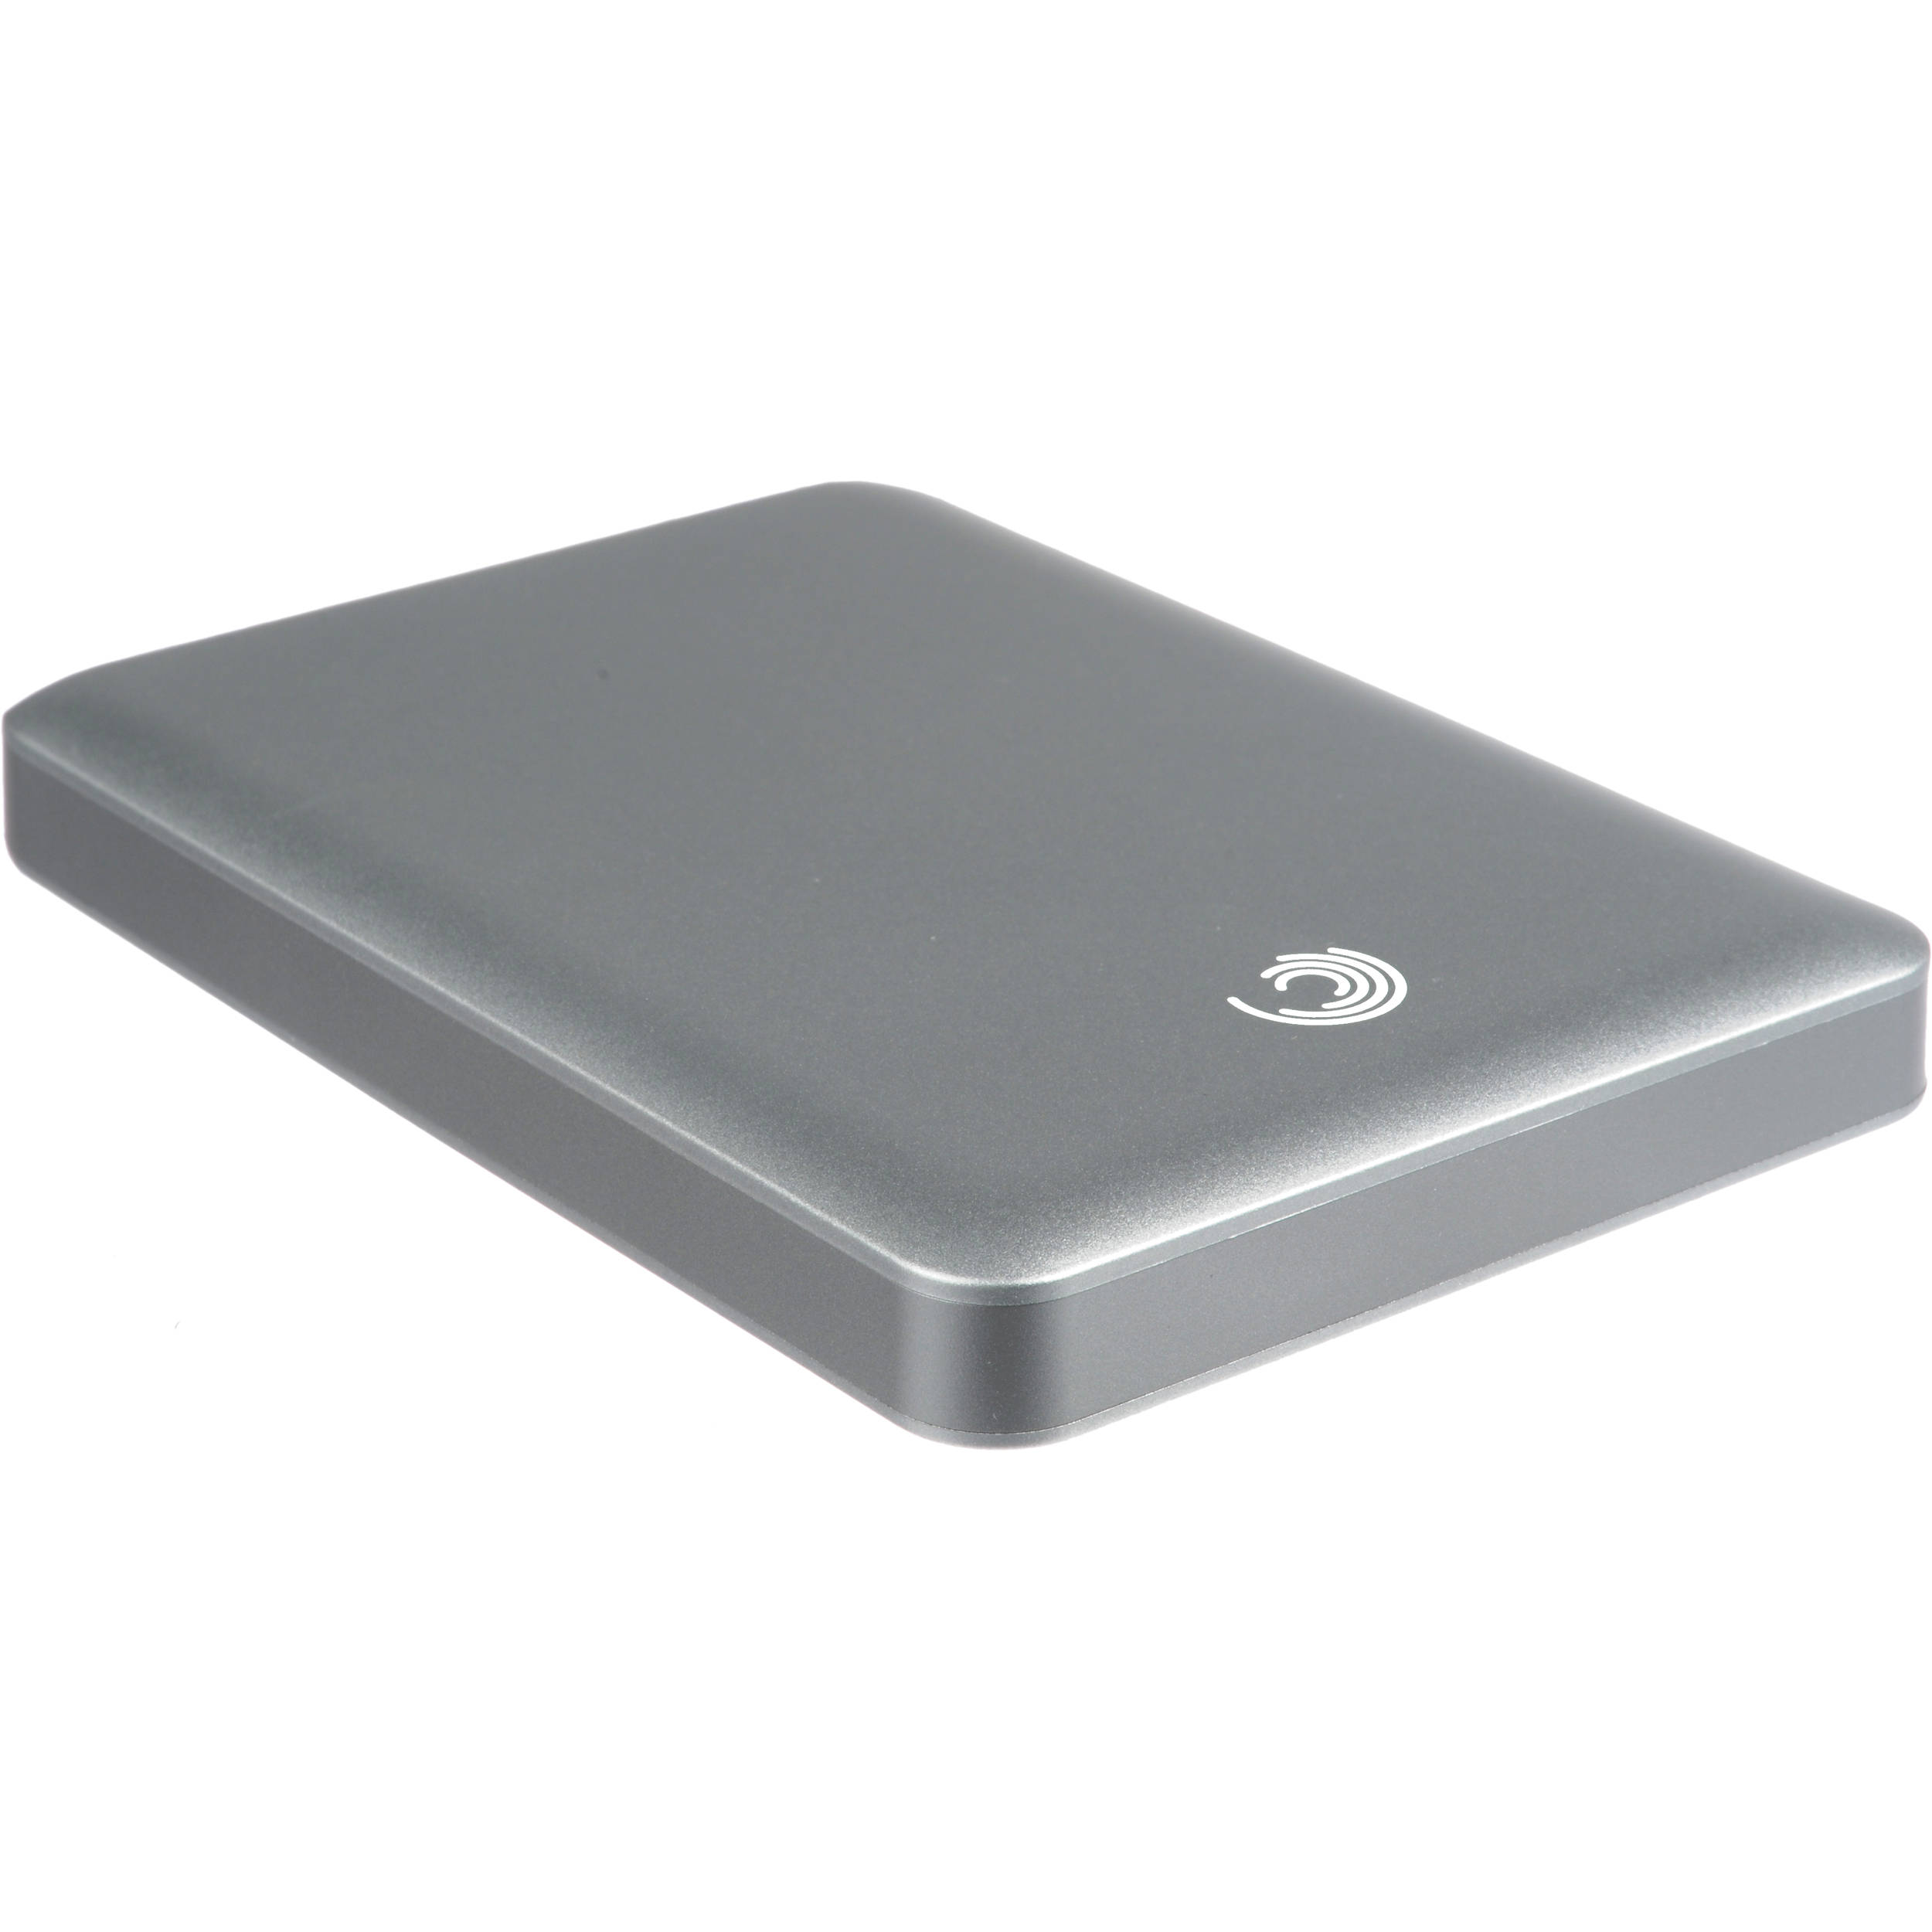 Seagate External Hard Drive Drivers Download - Update Seagate Software